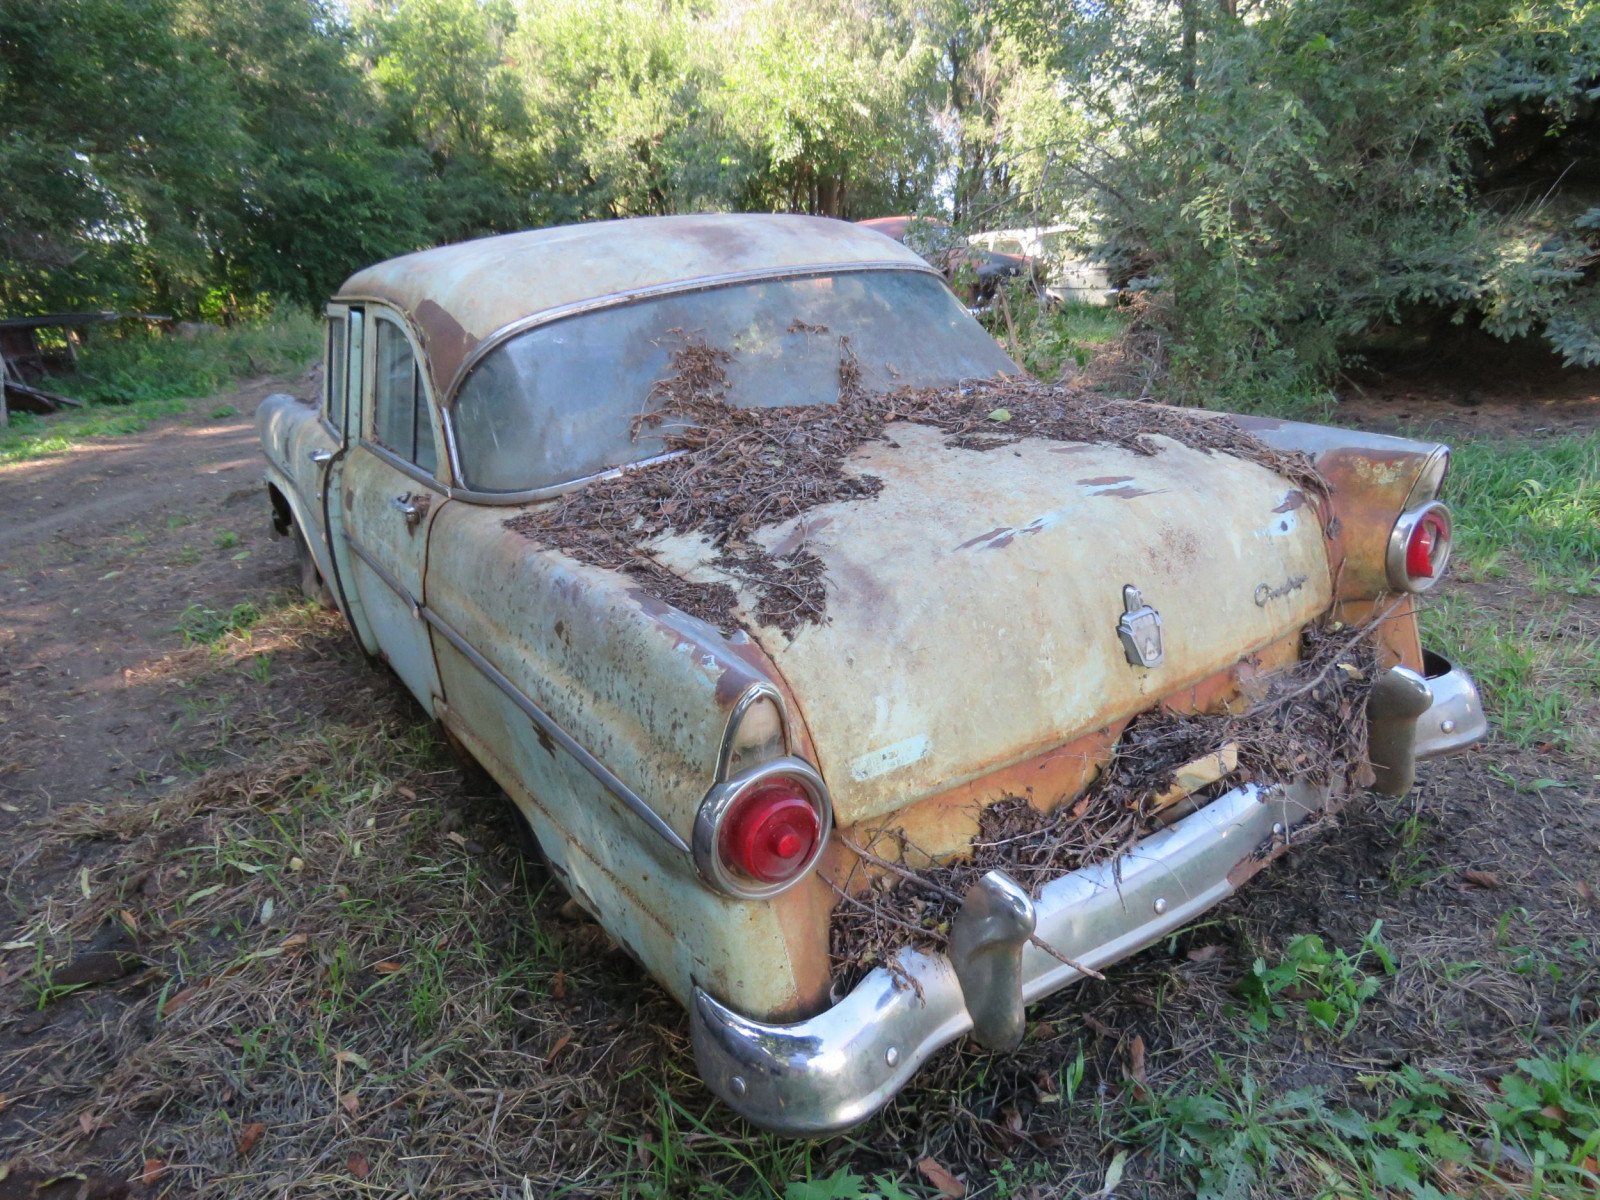 1955 Ford Customline 4dr Sedan for Project or Parts - Image 6